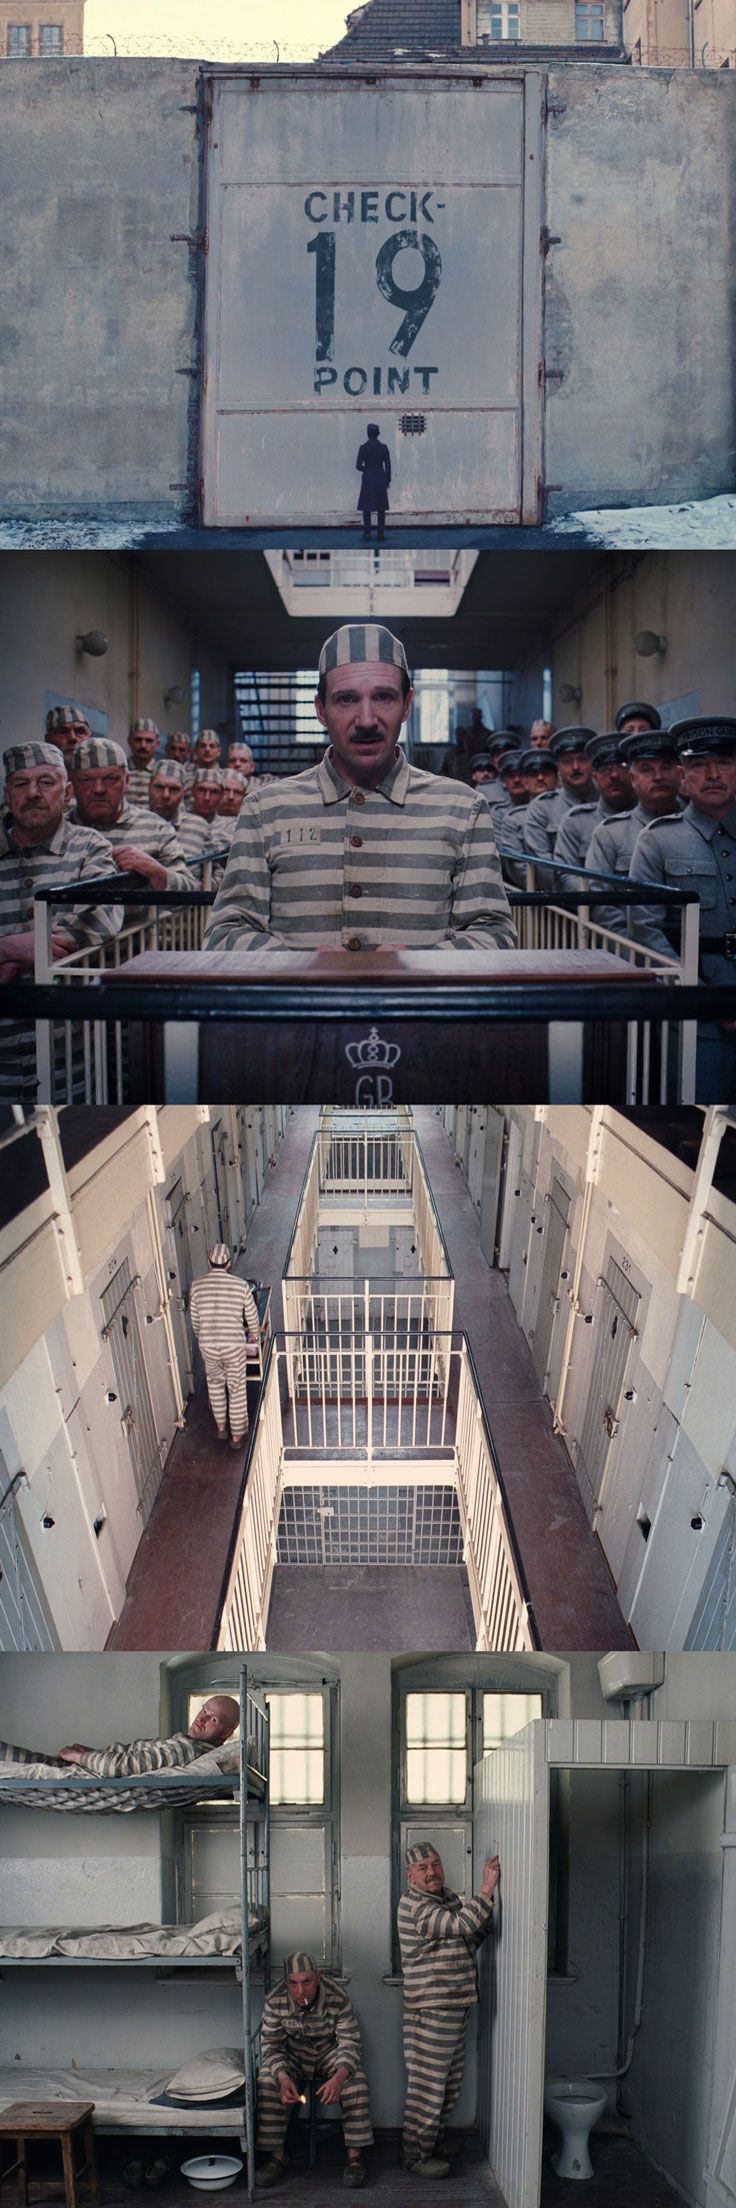 Prison scenes from The Grand Budapest Hotel. Cinematography by Robert Yeoman. #CaminoAlÓscar